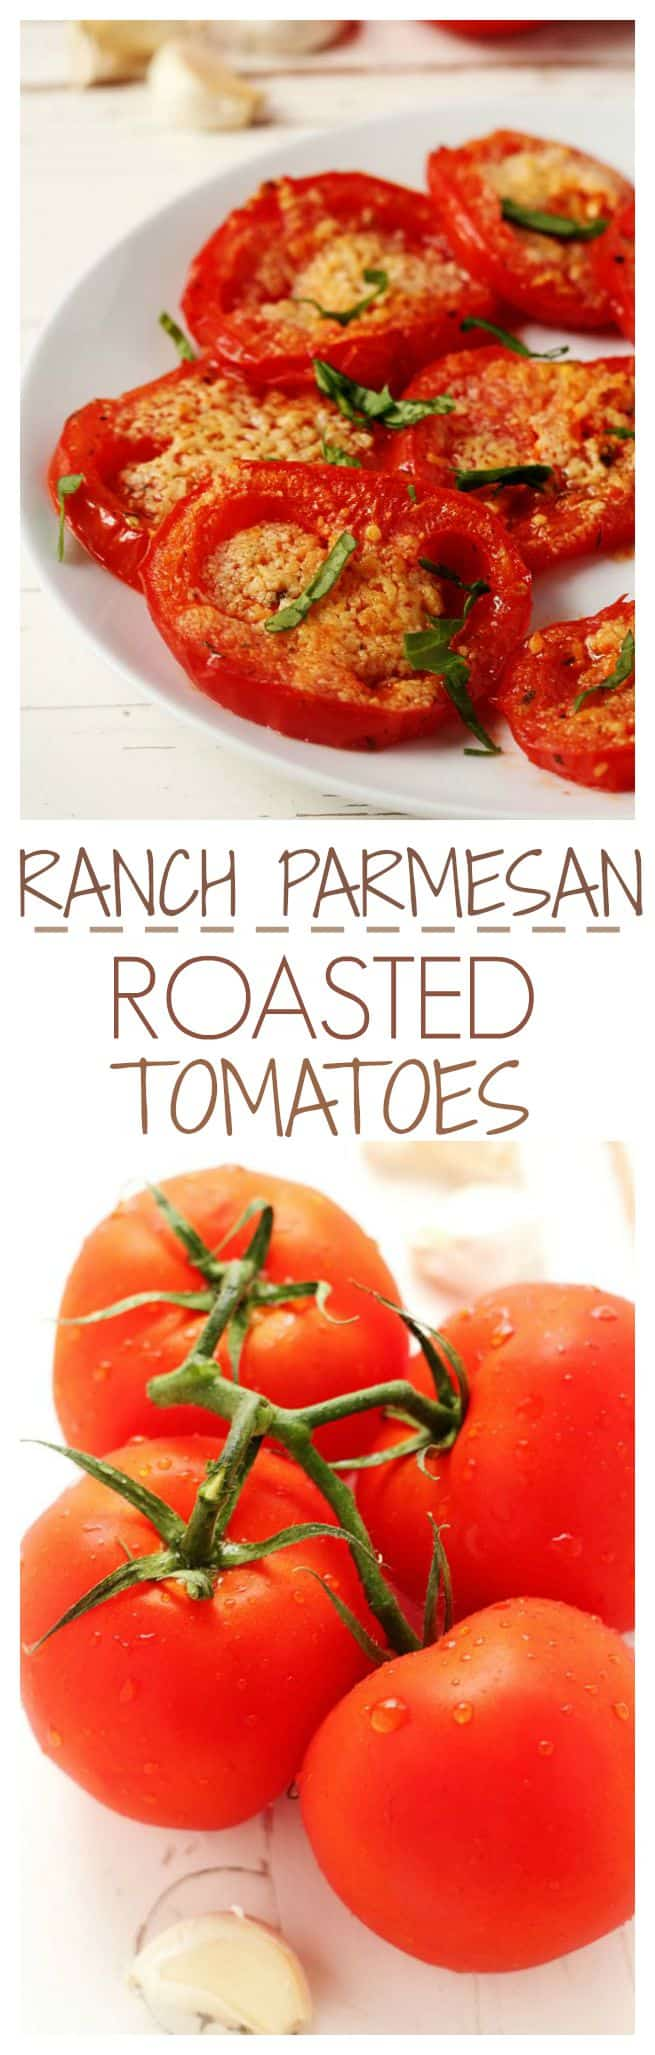 Ranch Parmesan Roasted Tomatoes a perfect side dish with beautiful tomatoes Ranch Parmesan Roasted Tomatoes